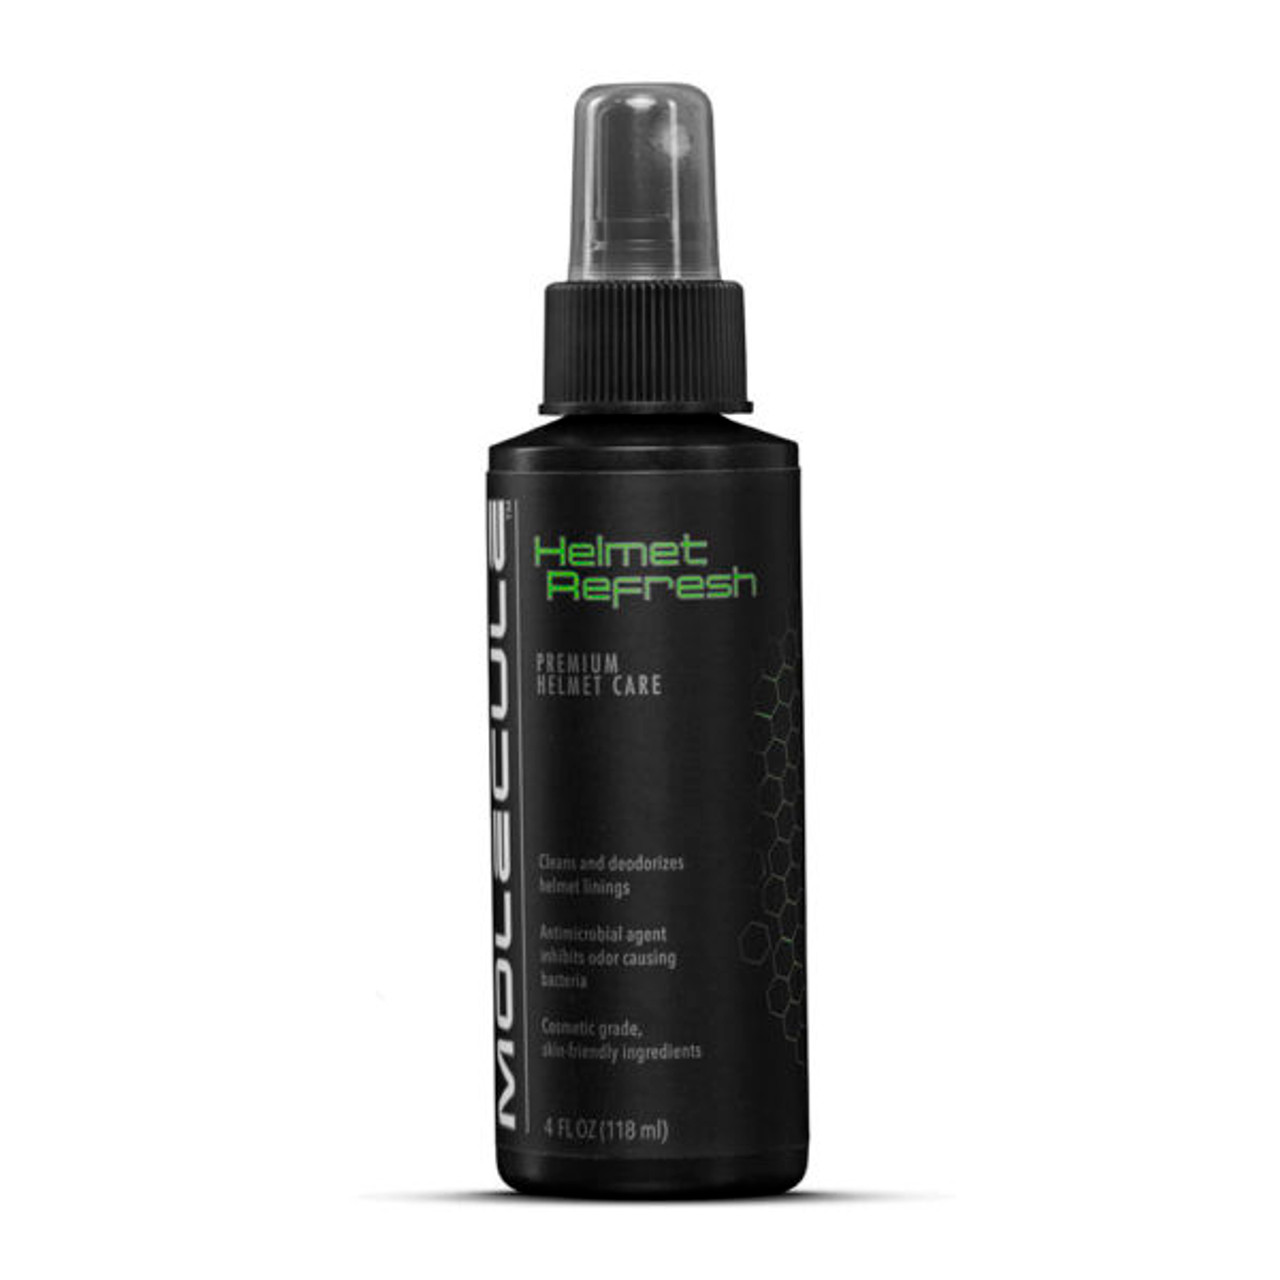 MOLECULE Helmet Fabric Refresher Spray